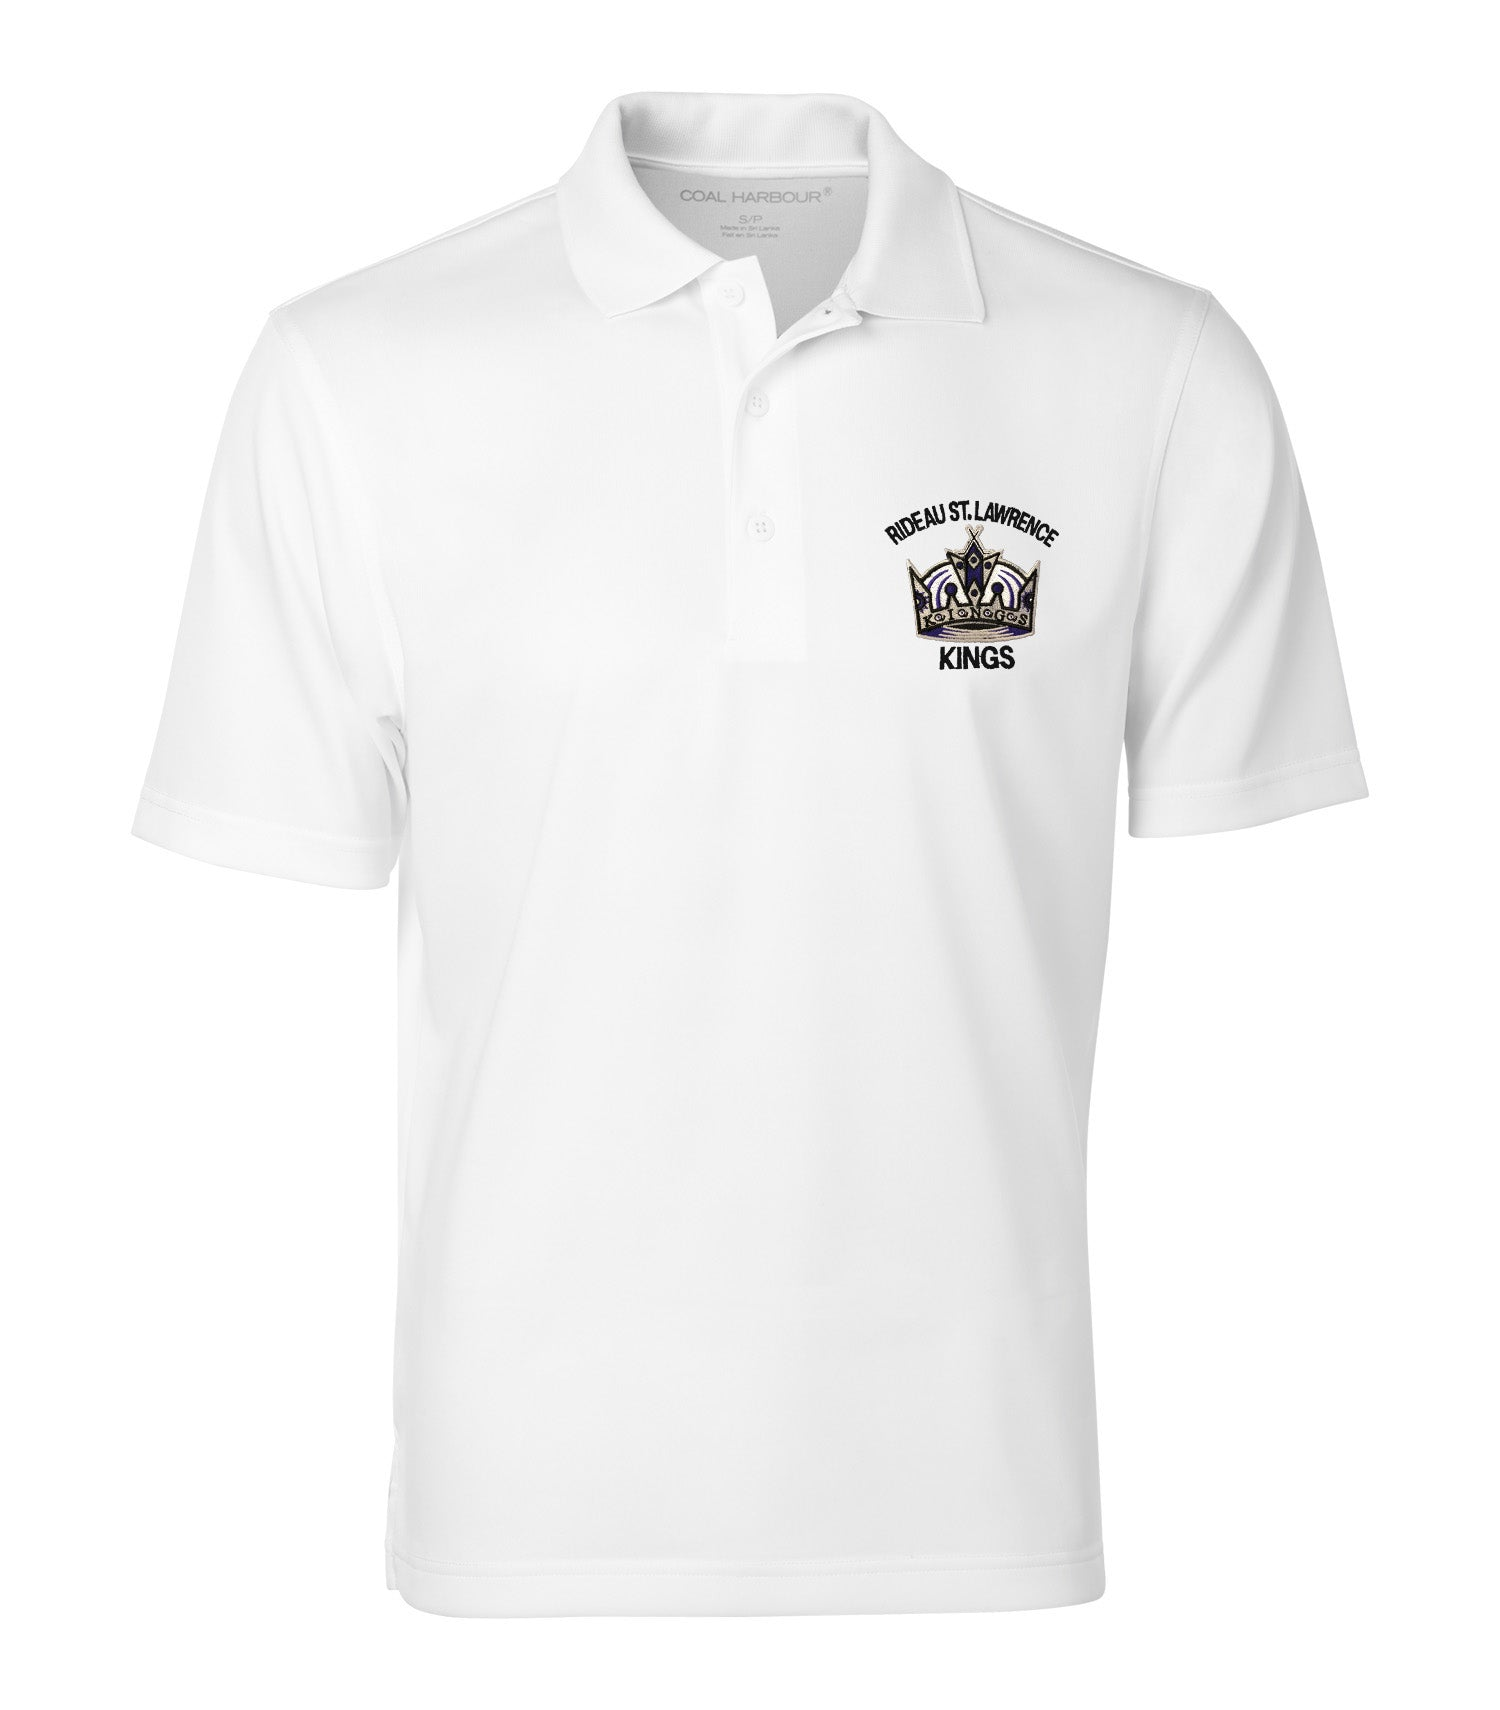 KINGS - Golf Shirt - Inventory